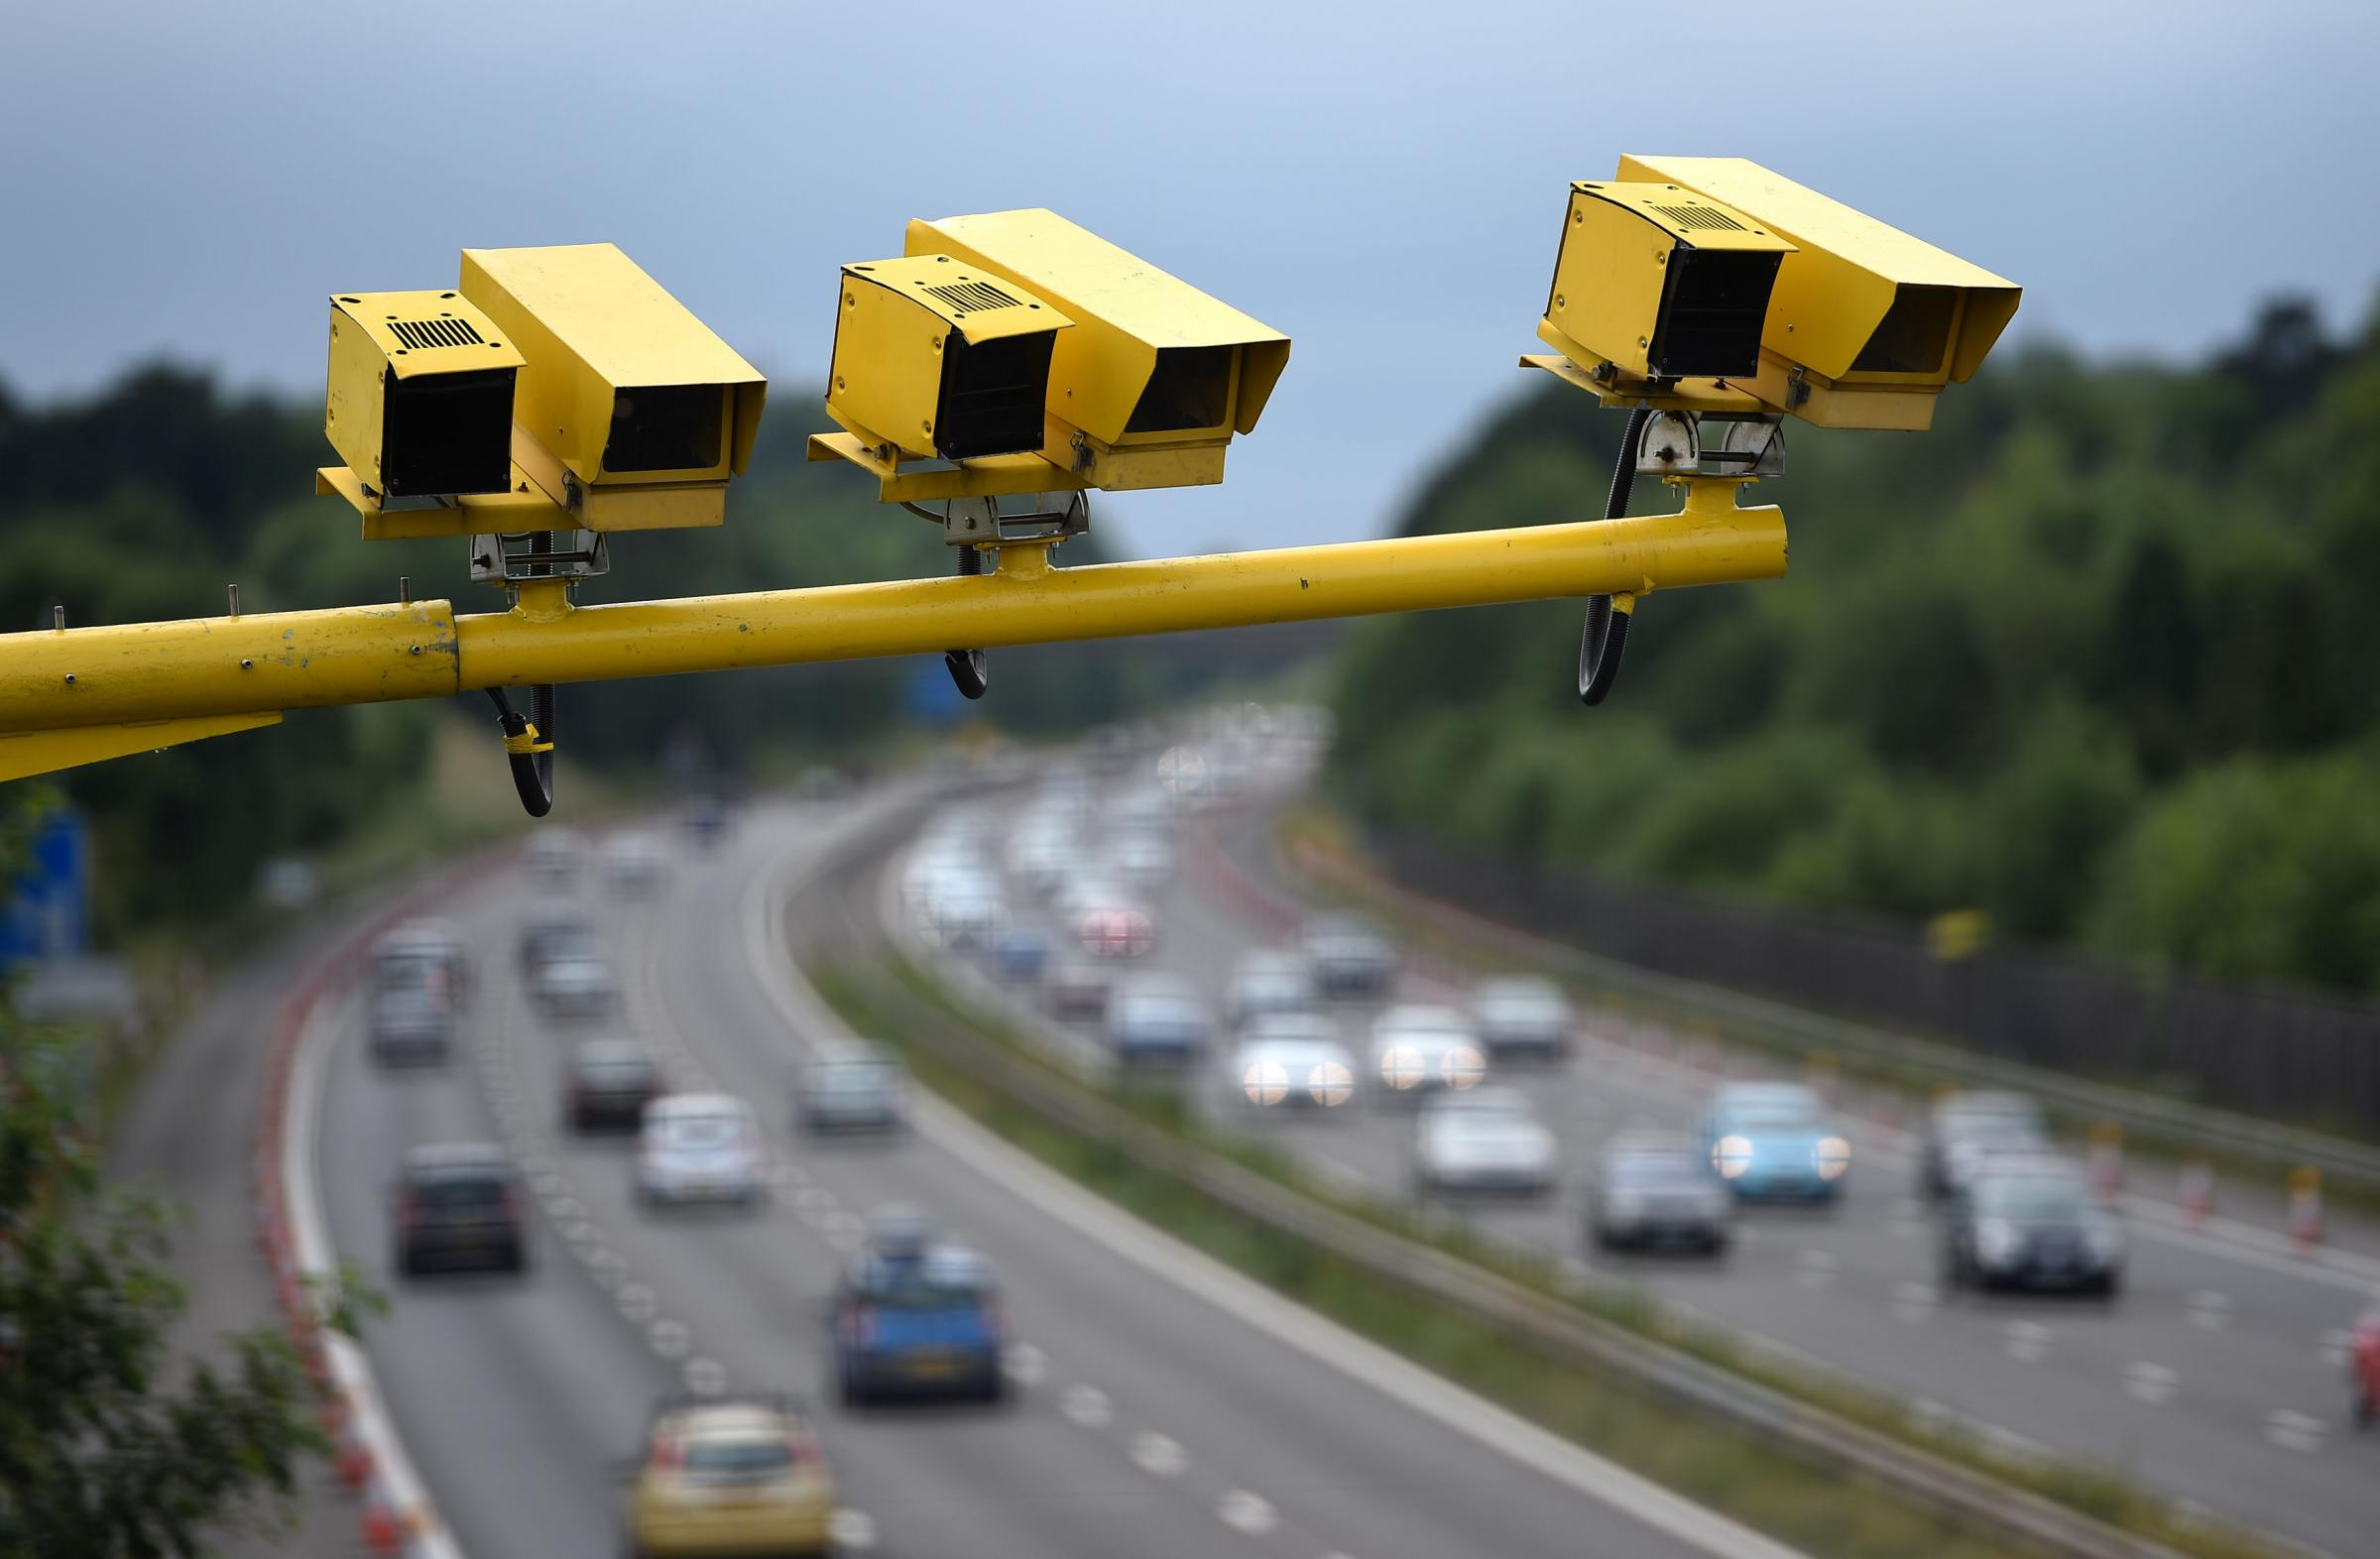 New permanent average speed camera to be installed on A69 near Carlisle